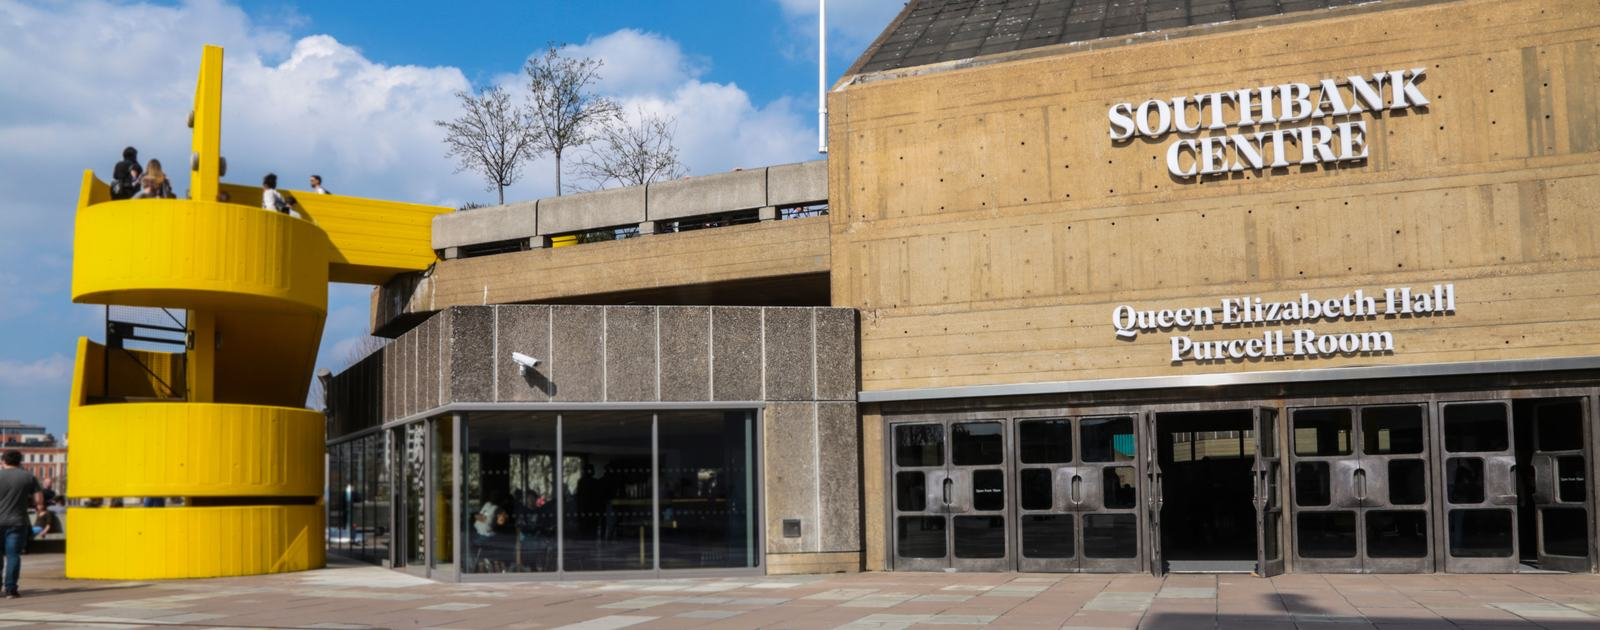 Queen Elizabeth Hall & Purcell Room reopen | Page 46